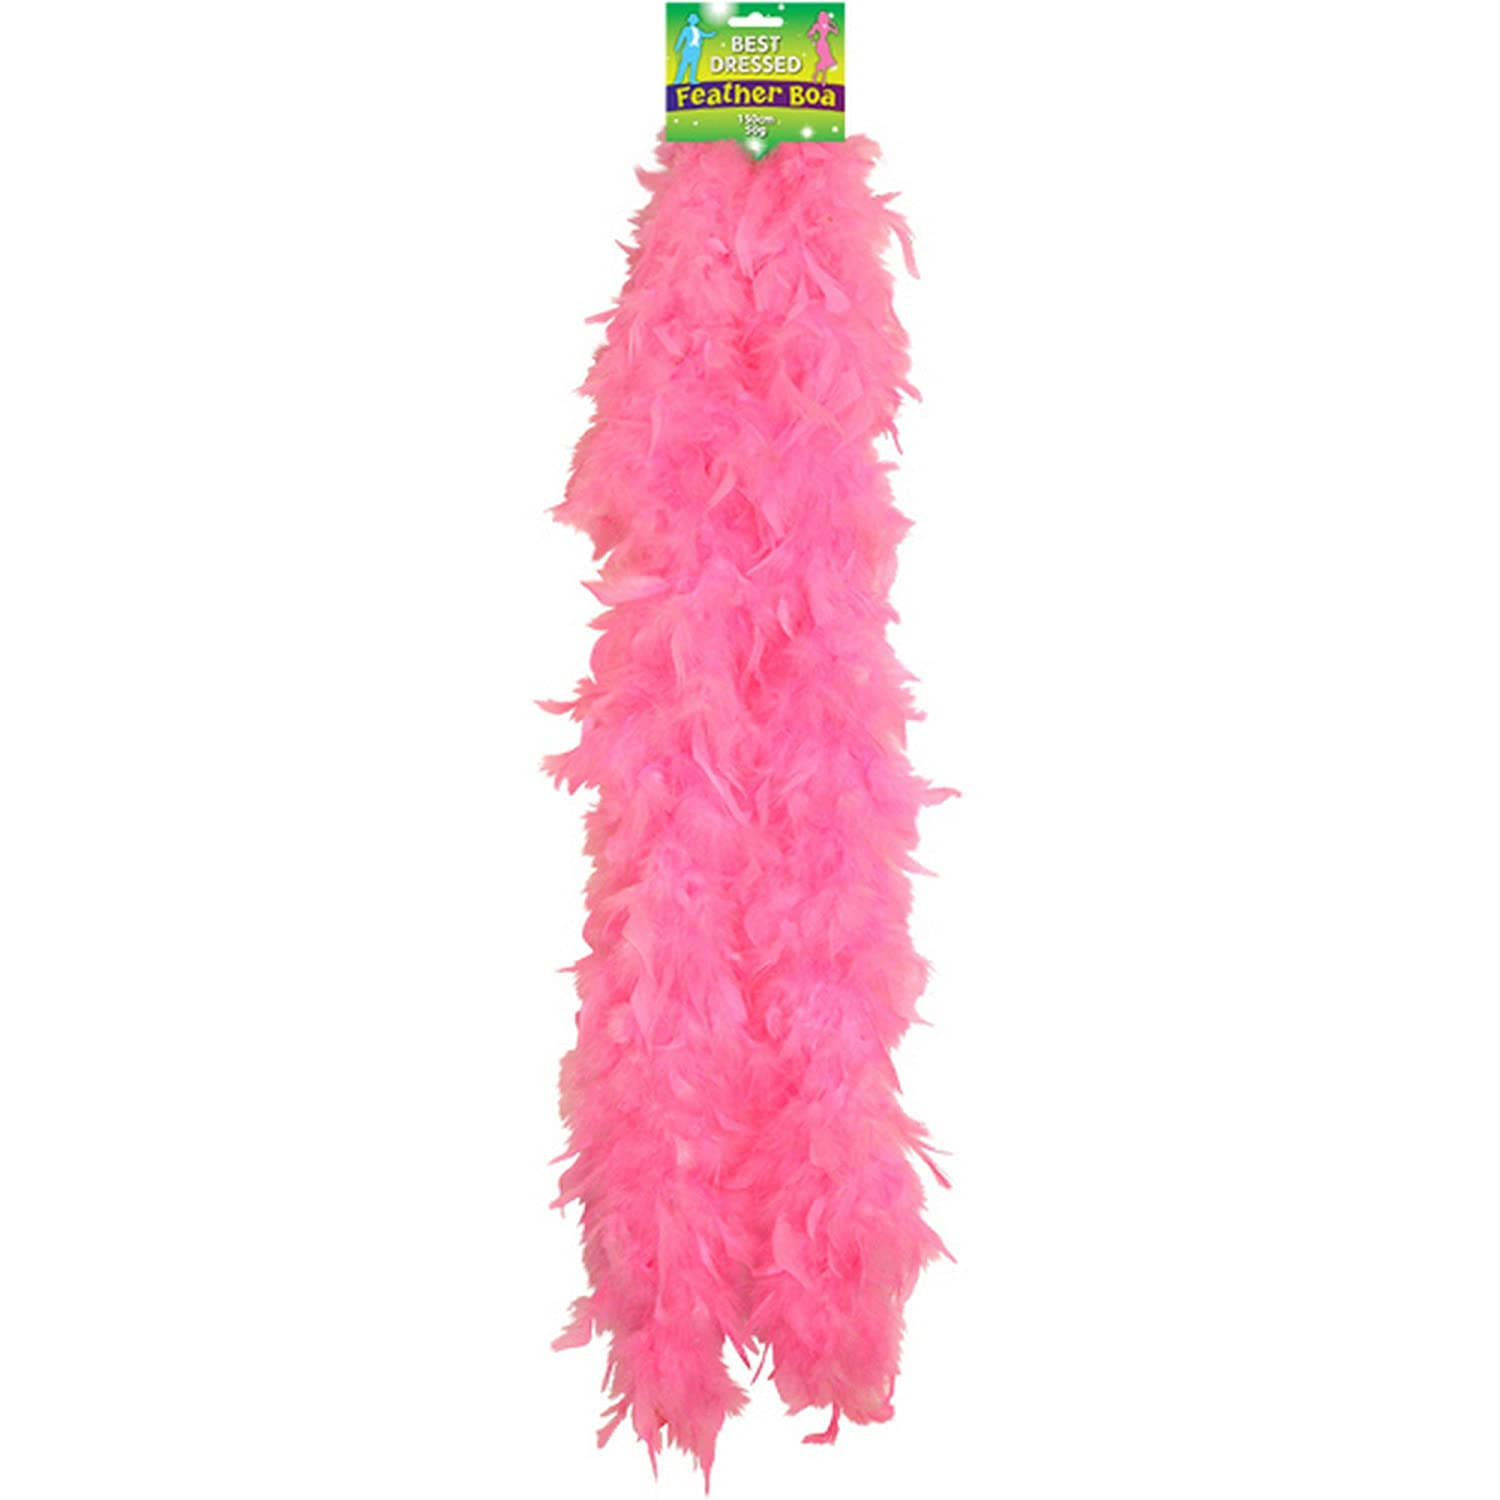 FEATHER BOA 150CM PINK Henbrandt U07 089